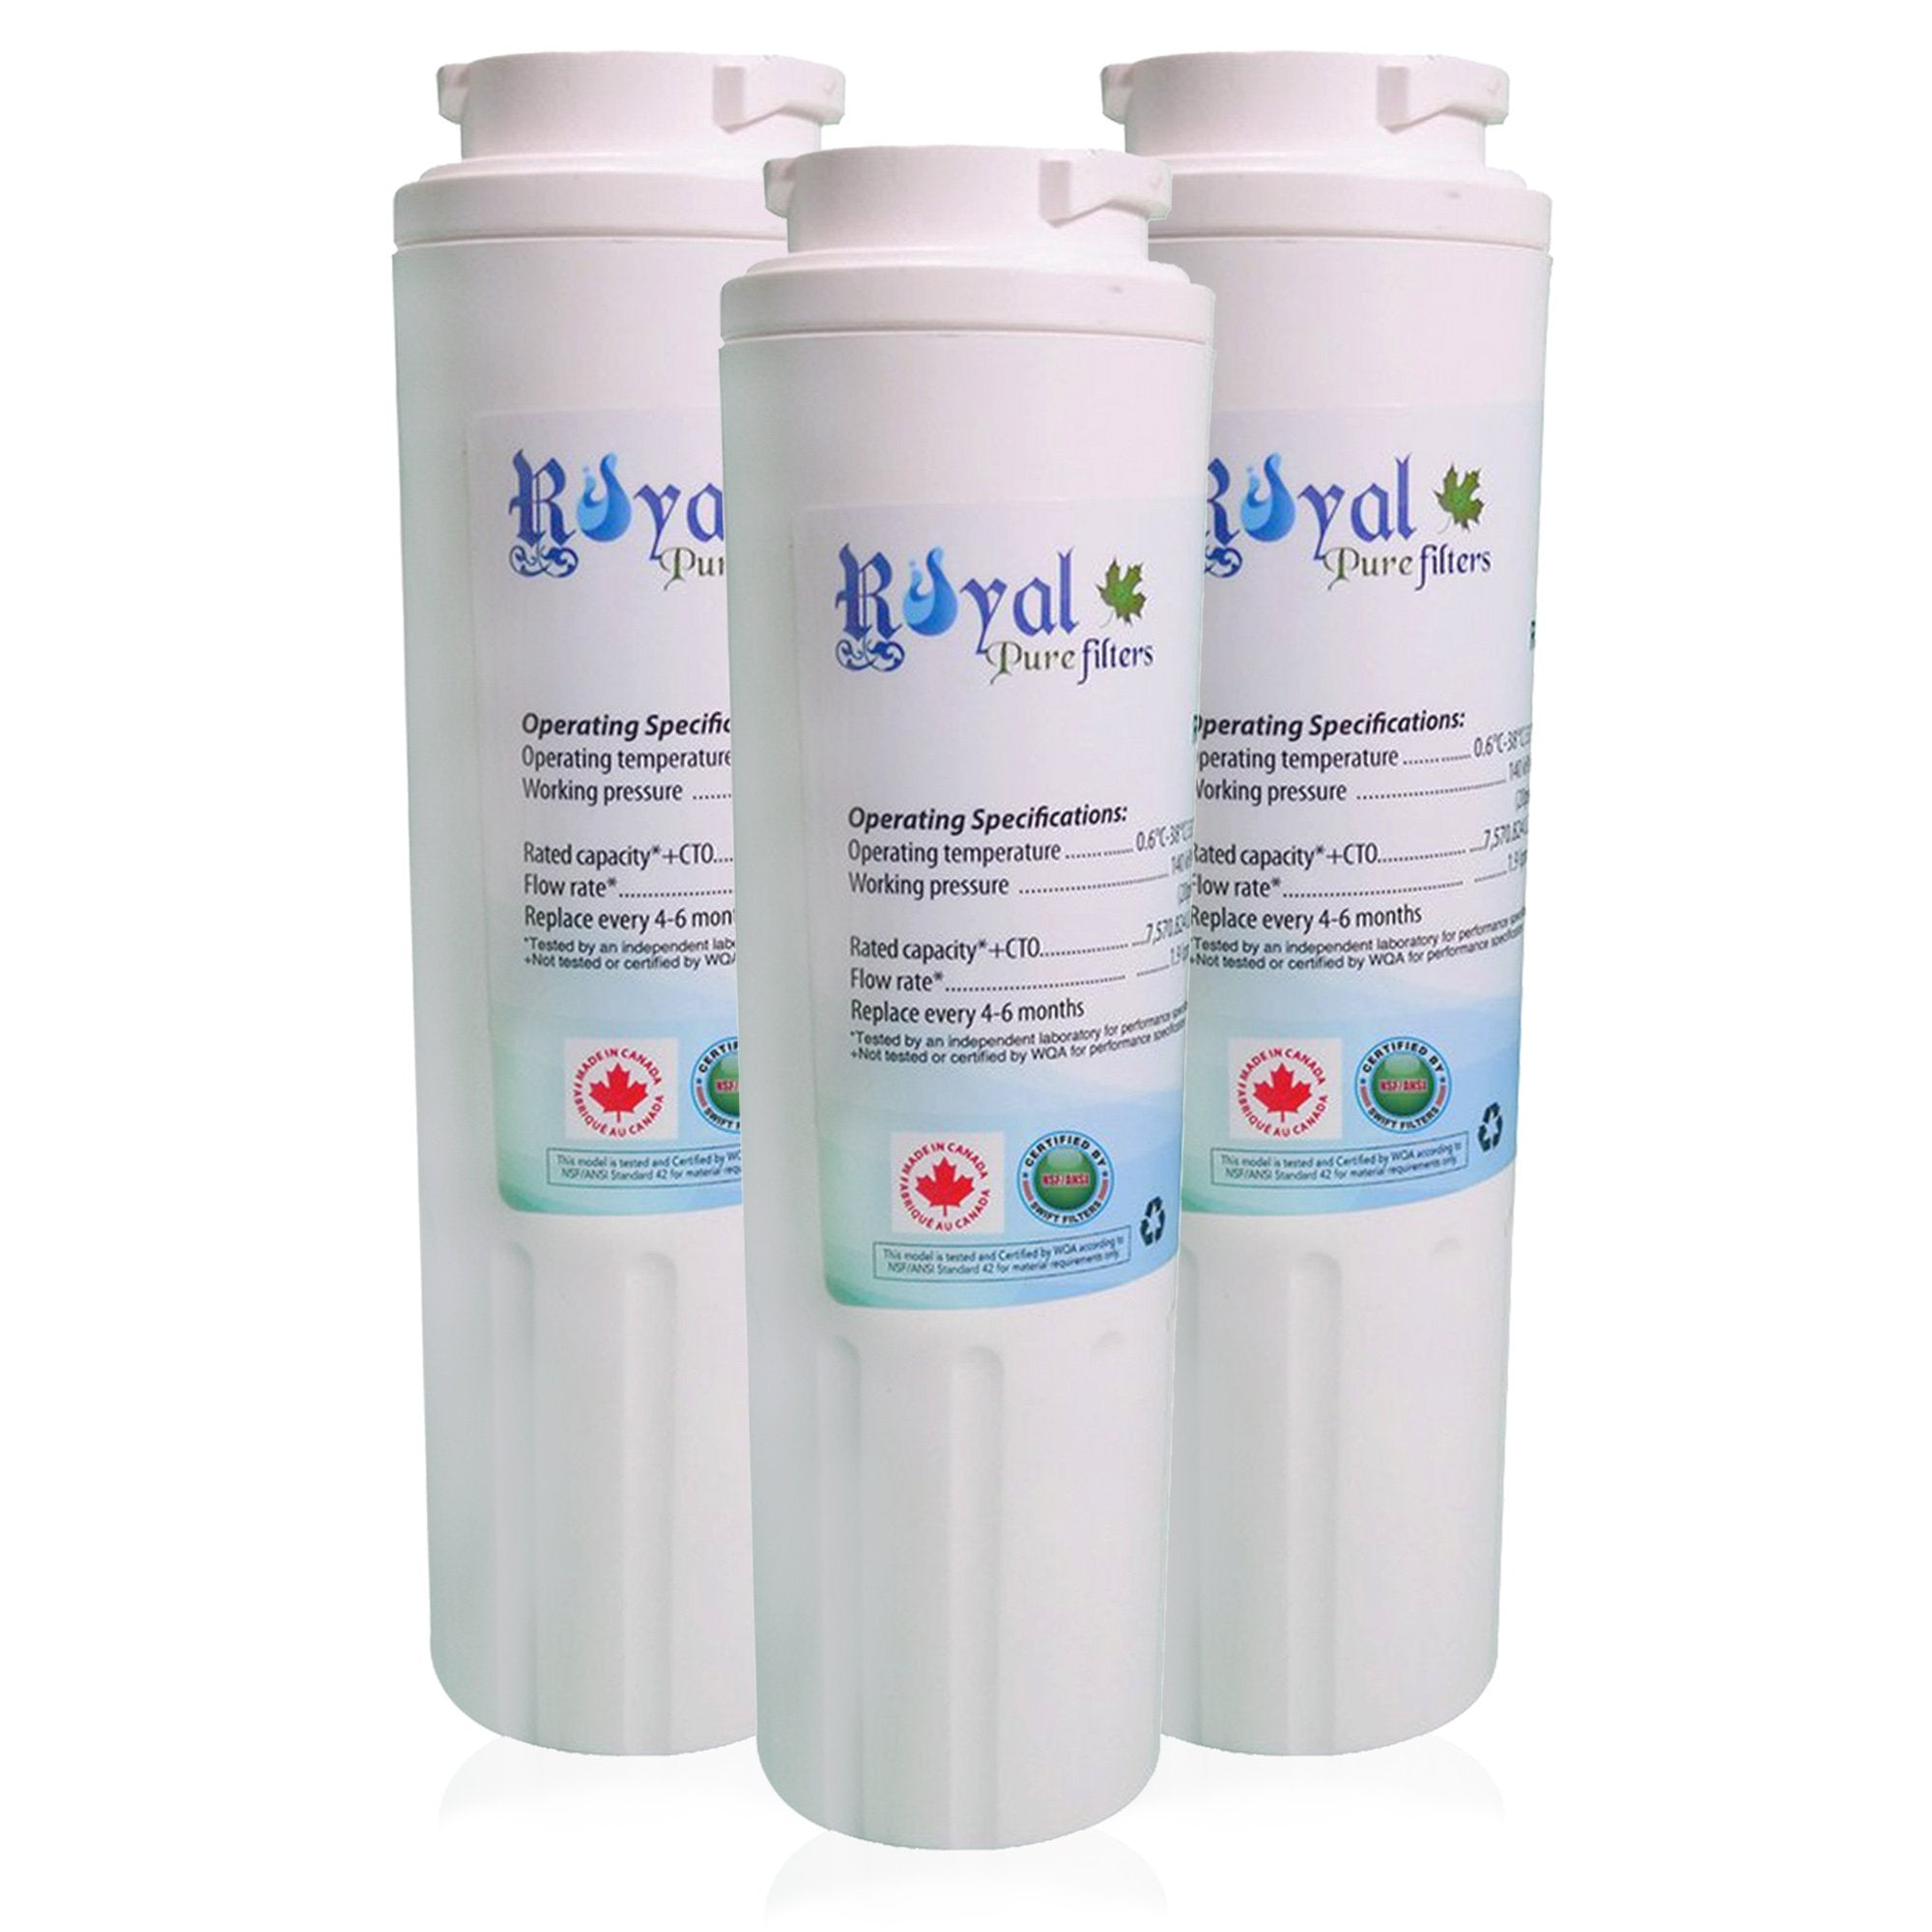 EveryDrop EDR4RXD1, Maytag Ukf8001 & Whirlpool 4396395 Compatible CTO Refrigerator Water Filter 3 PACK